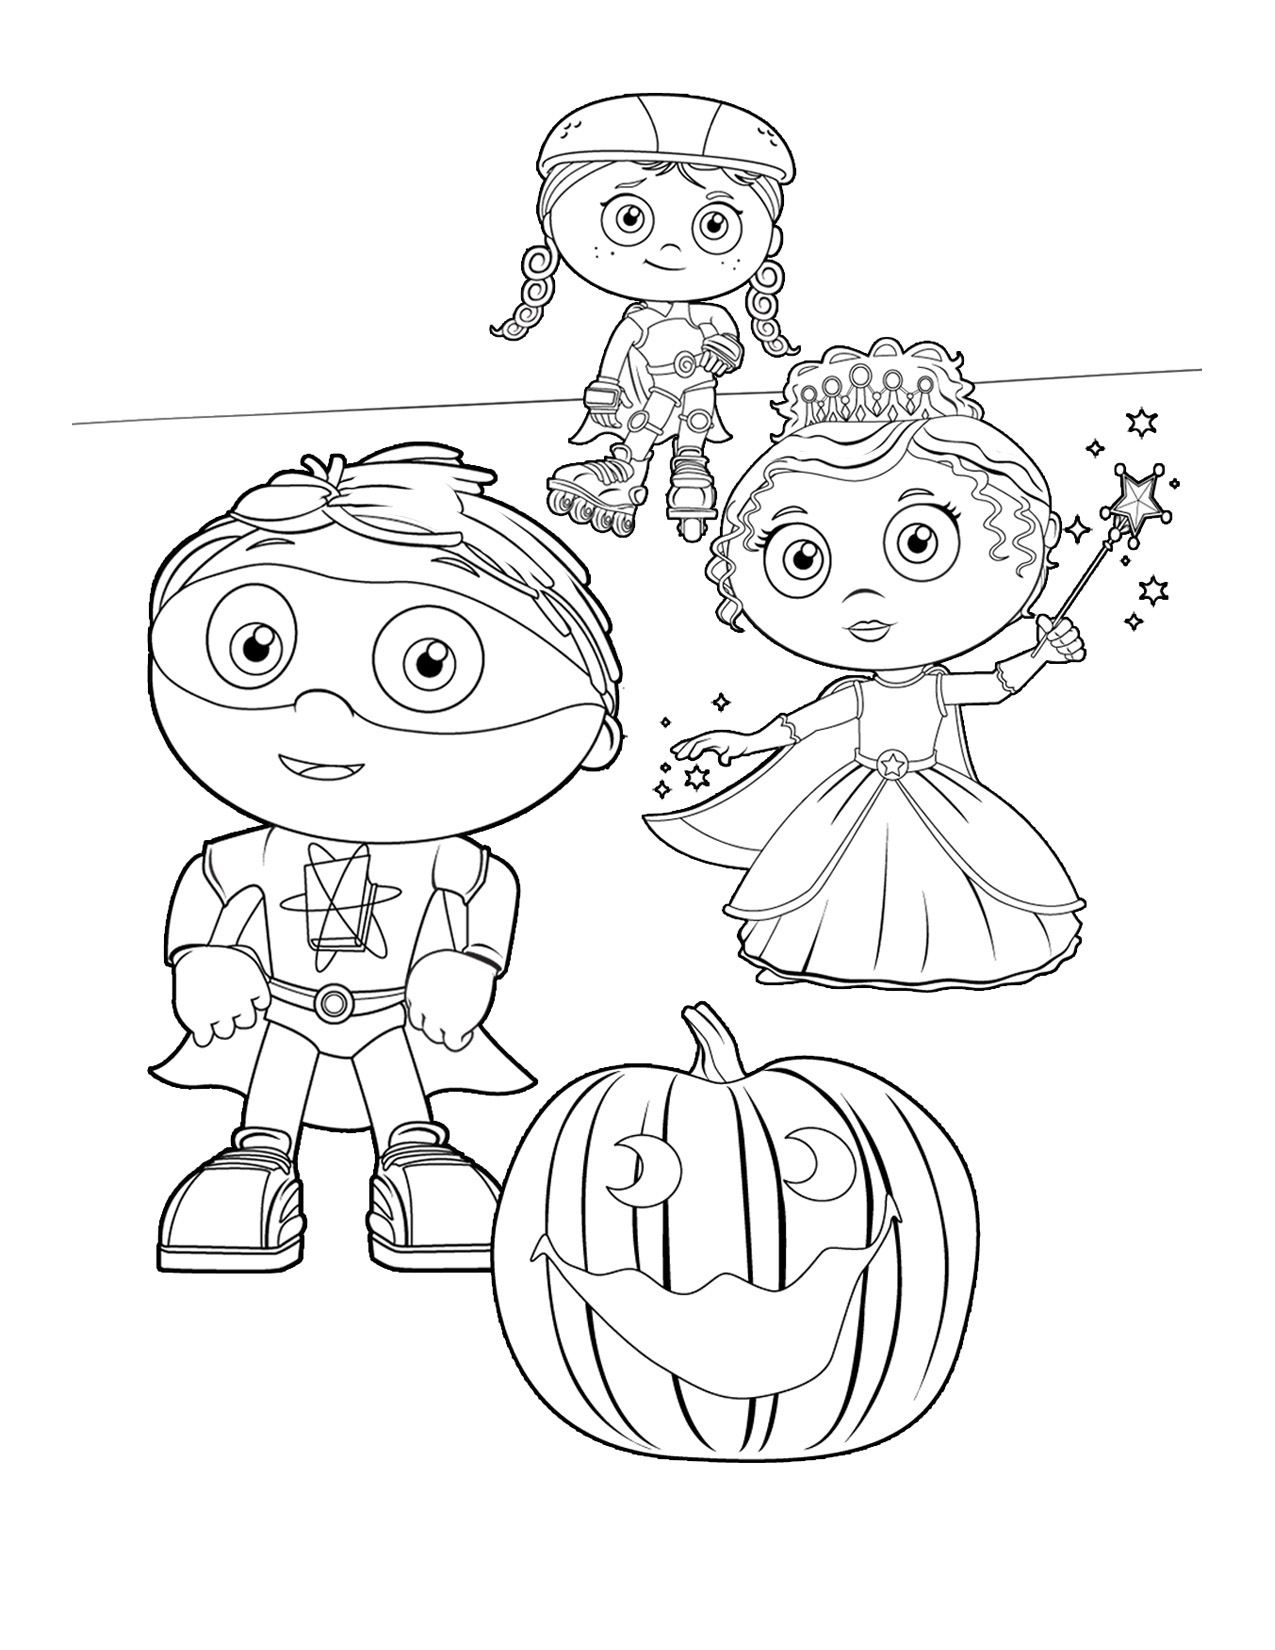 imagenes de super why para colorear